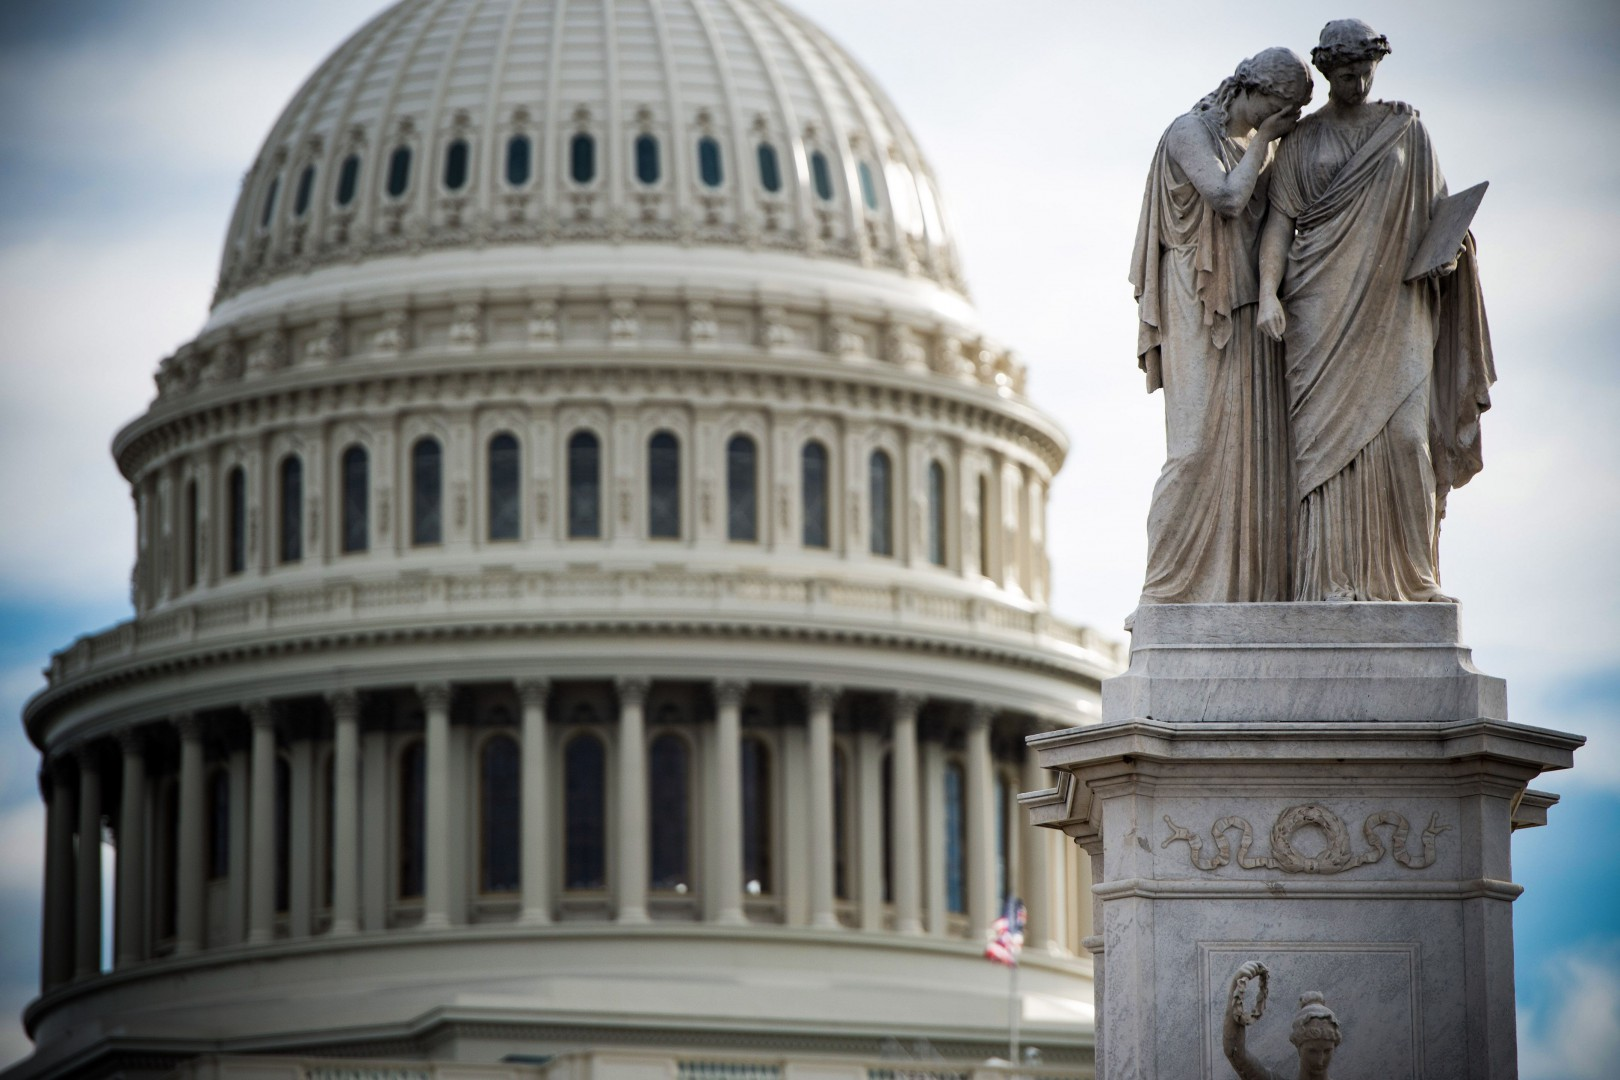 The US Capitol is seen in Washington, DC, December 17, 2018, as the Deadline for lawmakers to agree on a new spending deal to avert shutdown on Dec 22 approaches. - An angry Donald Trump told Democratic leaders at the White House on December 11 that he will shut down the US government because they refuse to approve billions of dollars in funding for his controversial Mexico border wall. (Photo by SAUL LOEB / AFP)